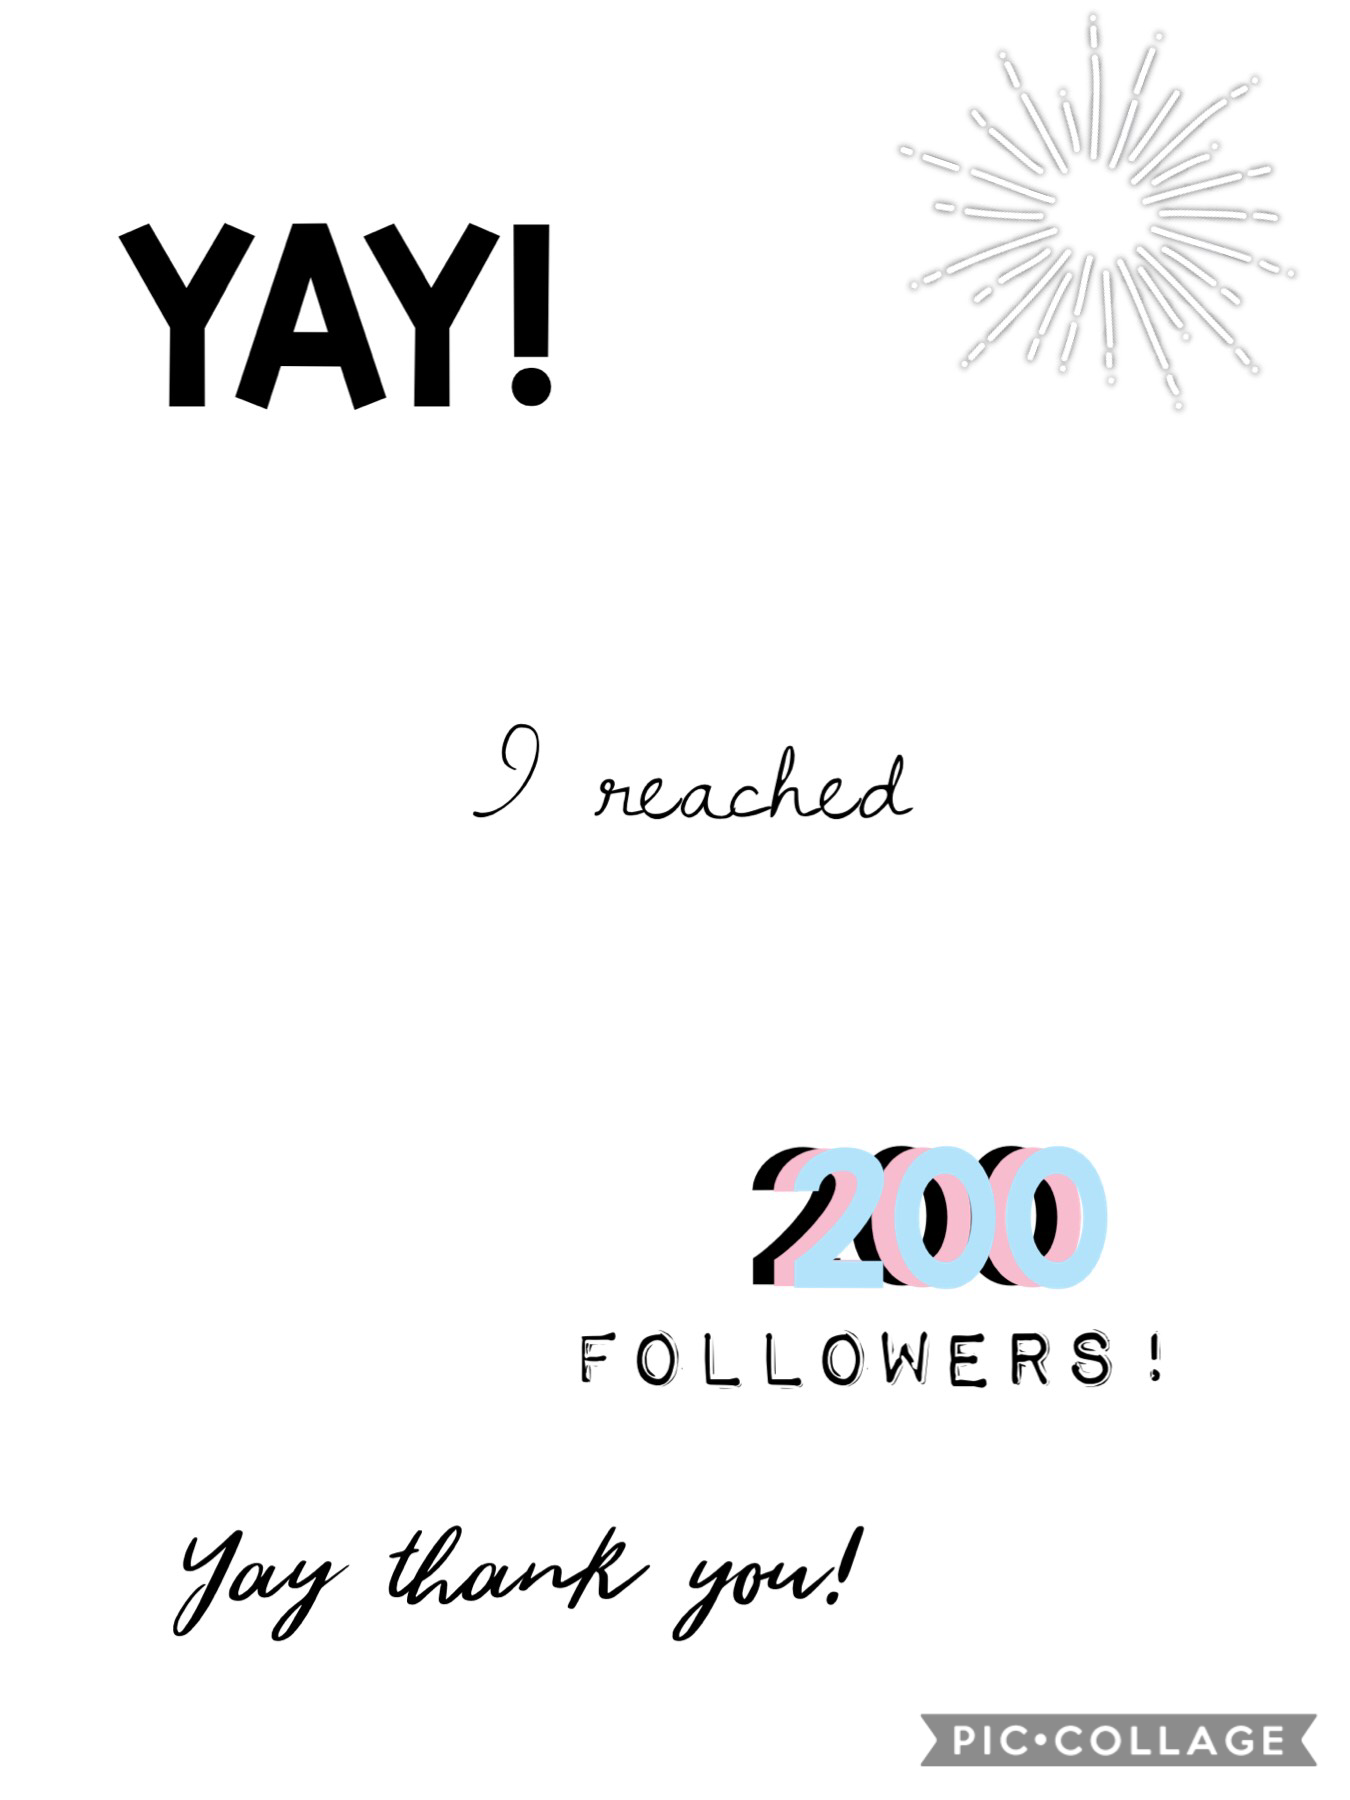 Thanks for 200 followers! YAY